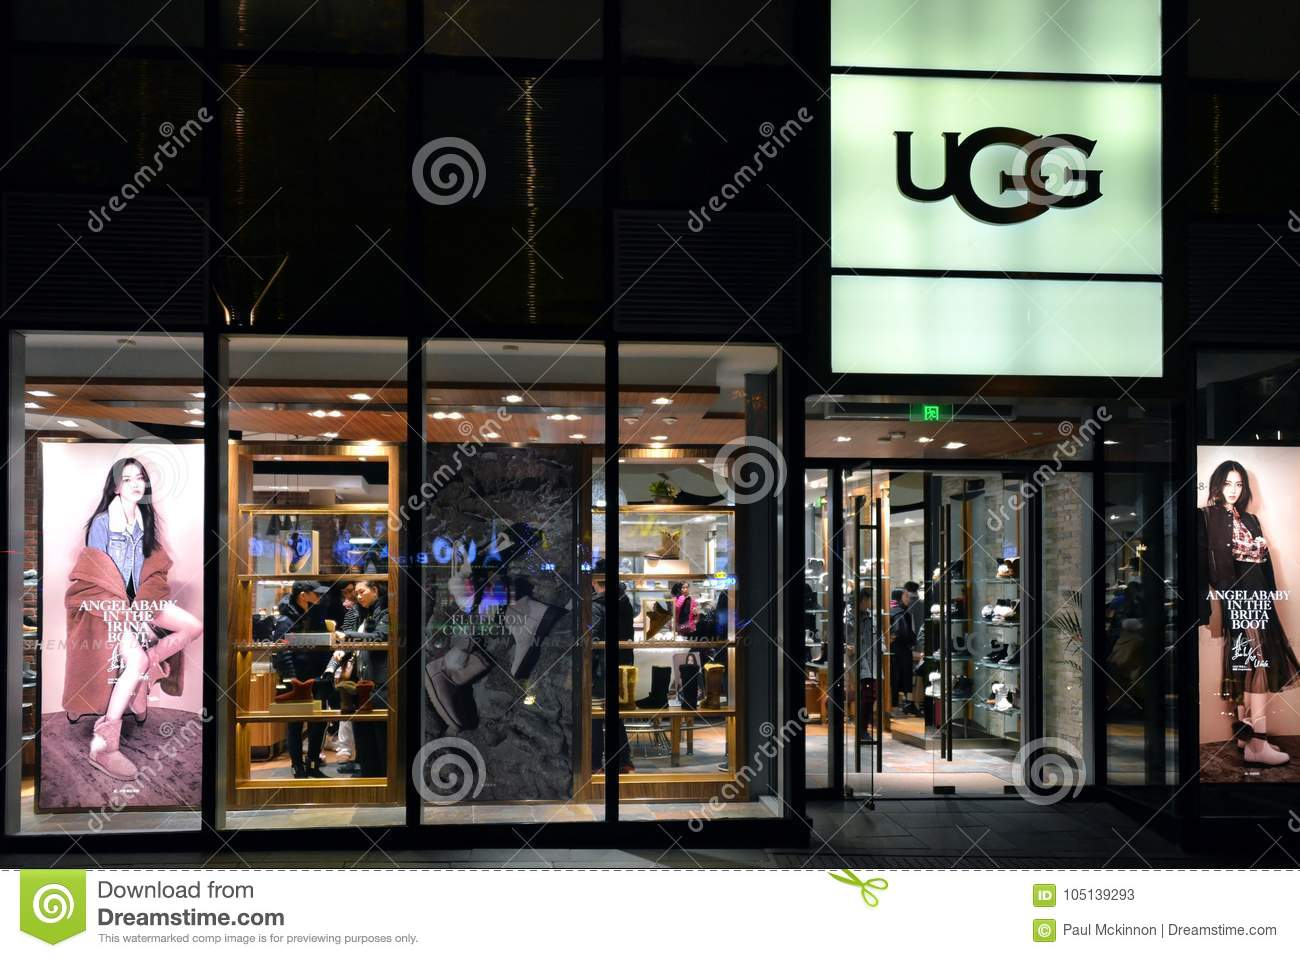 UGG store in Beijing editorial stock photo. Image of name - 105139293 a71998875352